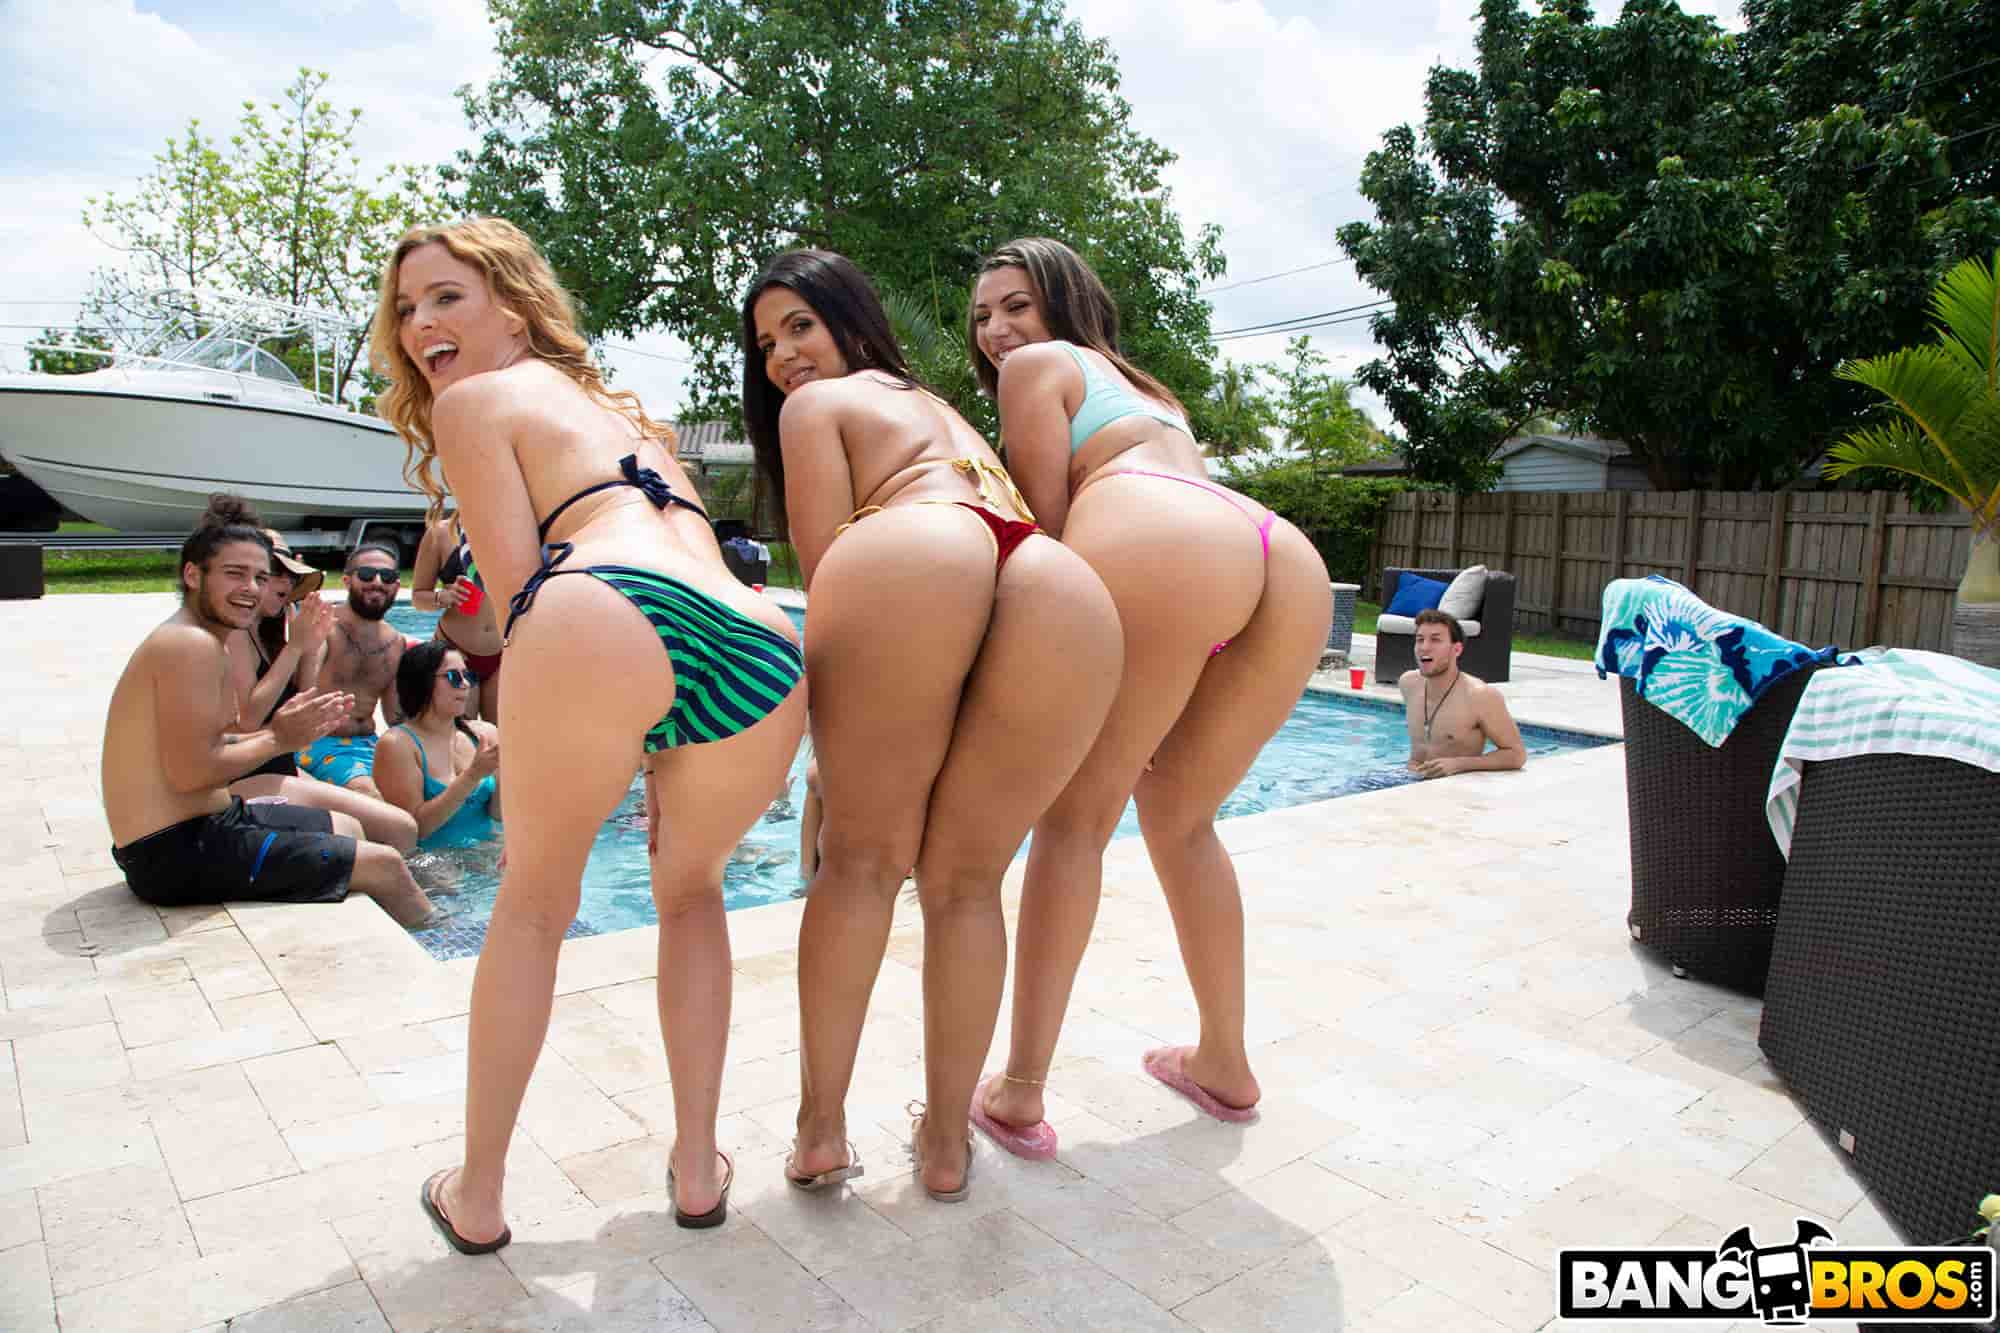 Free Bangbros Account & Mofos Naughtyamerica Login Premium Password Gets Here 22 July